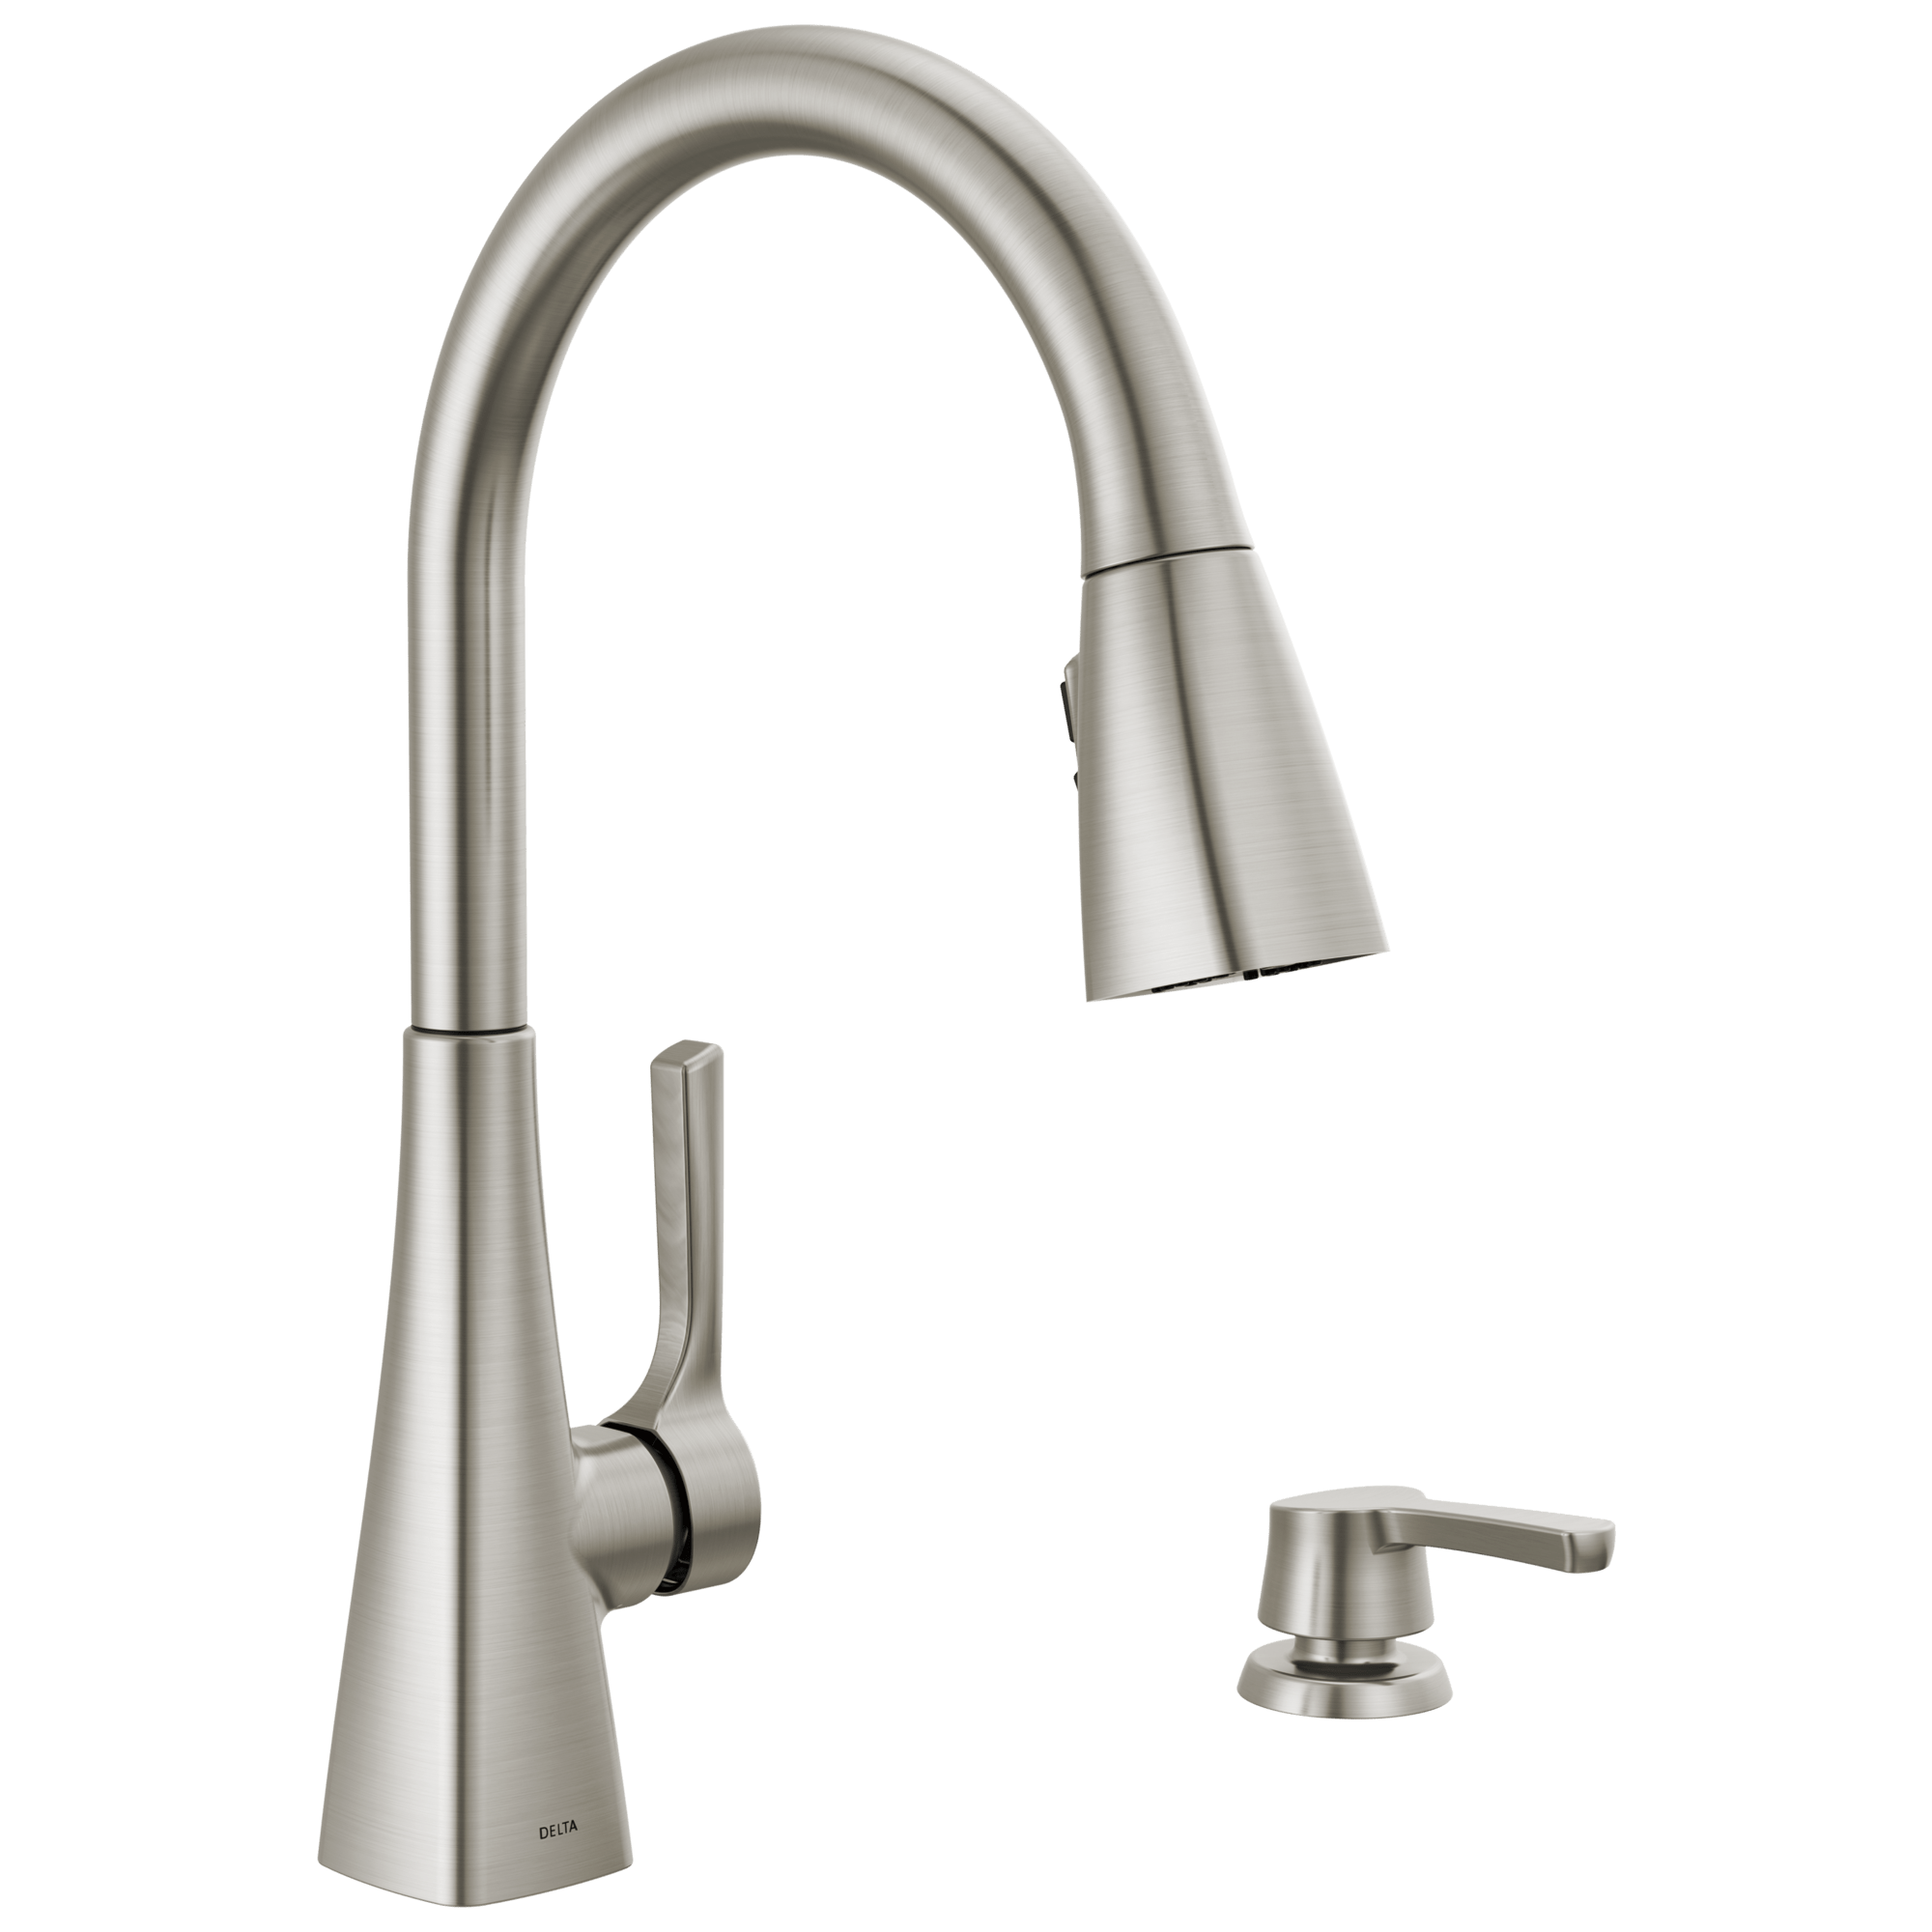 single handle pull down kitchen faucet with soap dispenser and shieldspray technology